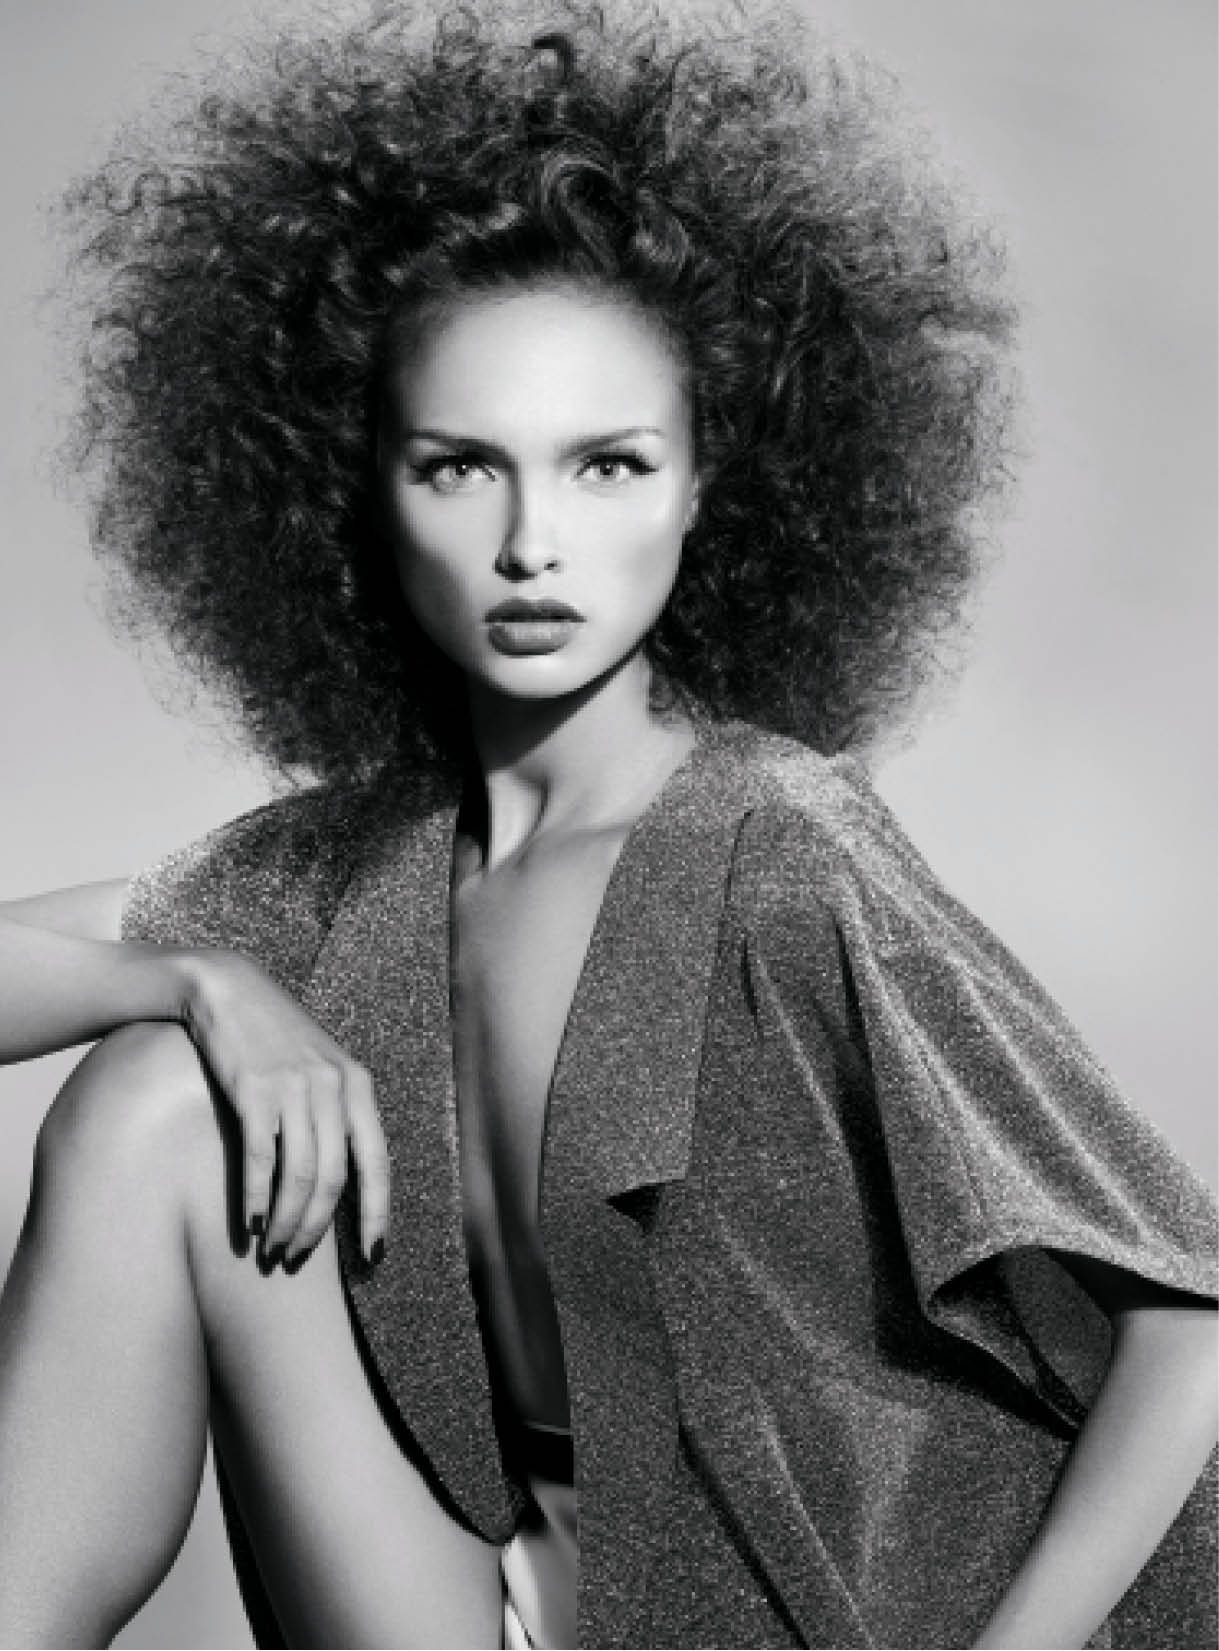 Mather wet-set hair using traditional setting lotion and small perm rollers, allowing two hours for hair to dry. Using a soft bristle brush, an afro comb and her fingers, she created ample volume.